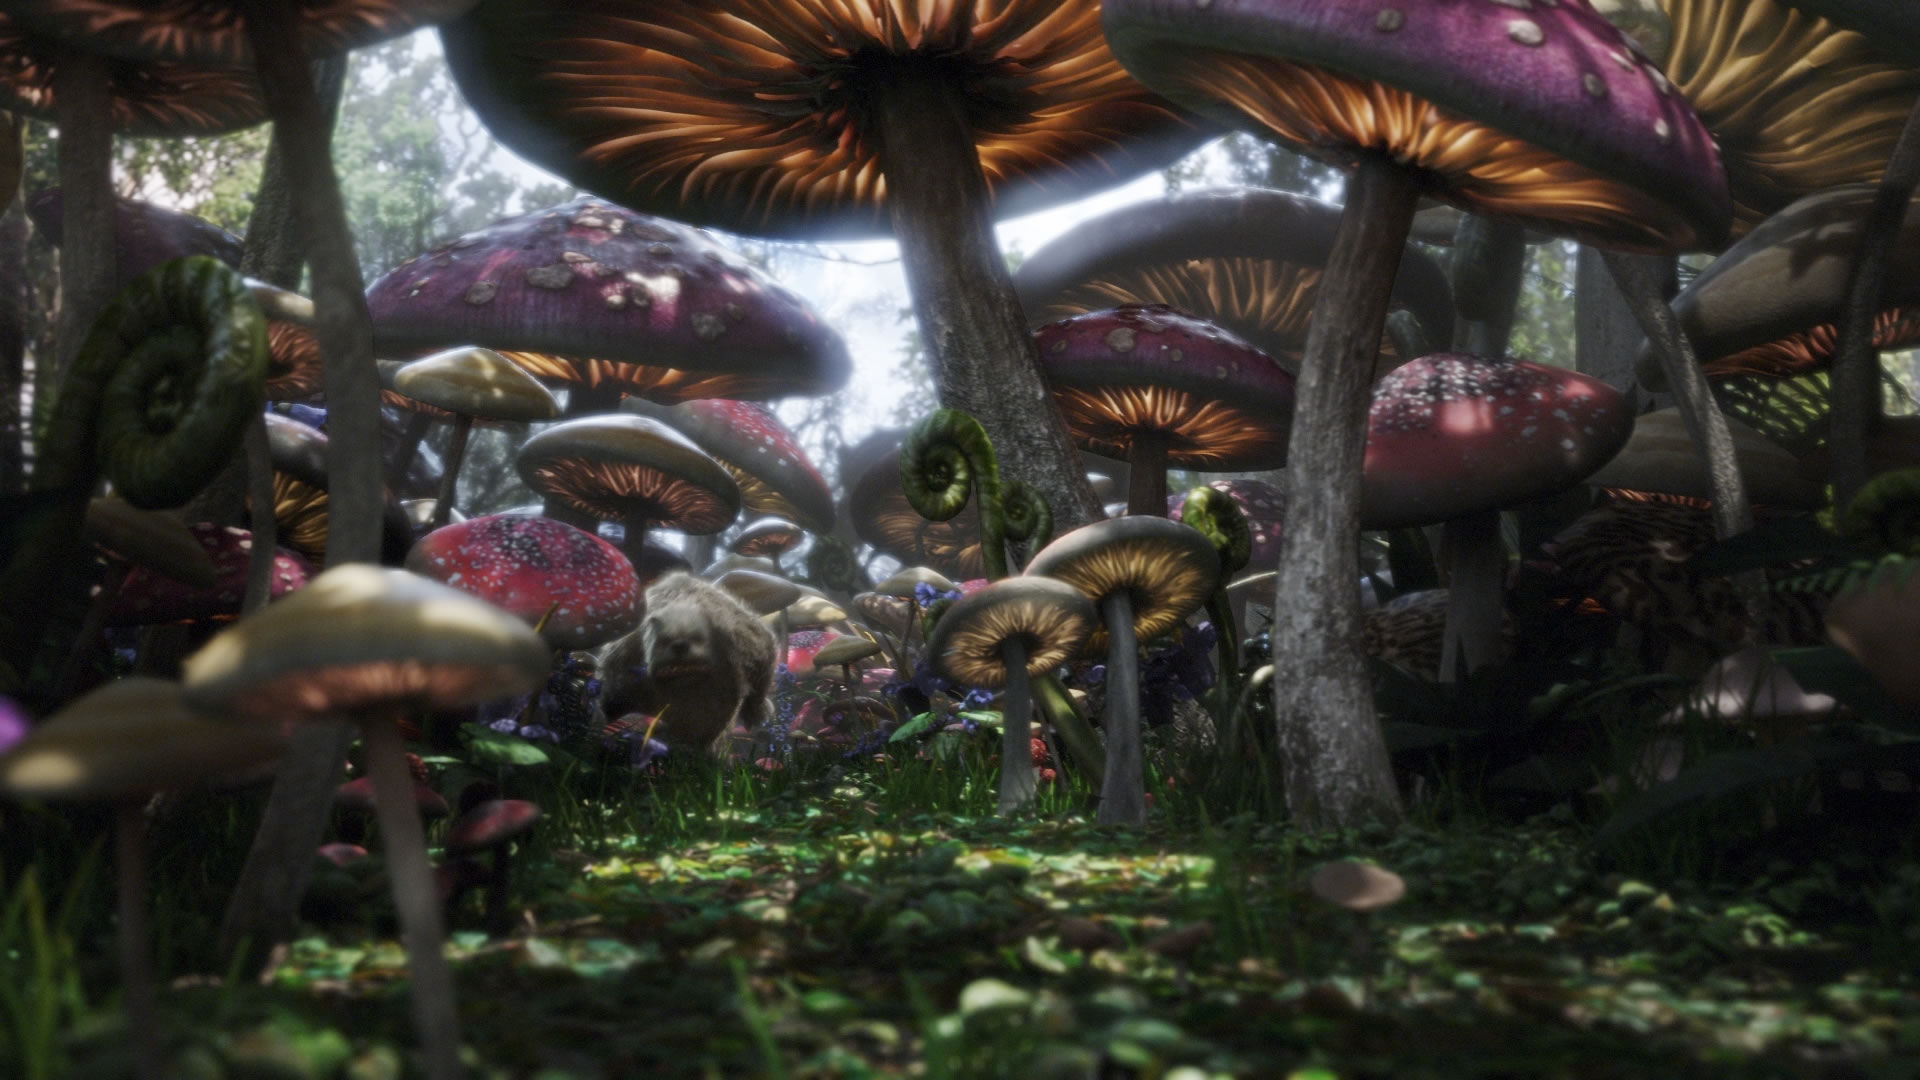 Alice in Wonderland Mushroom Forest 1920 x 1080 · 273 kB · jpeg